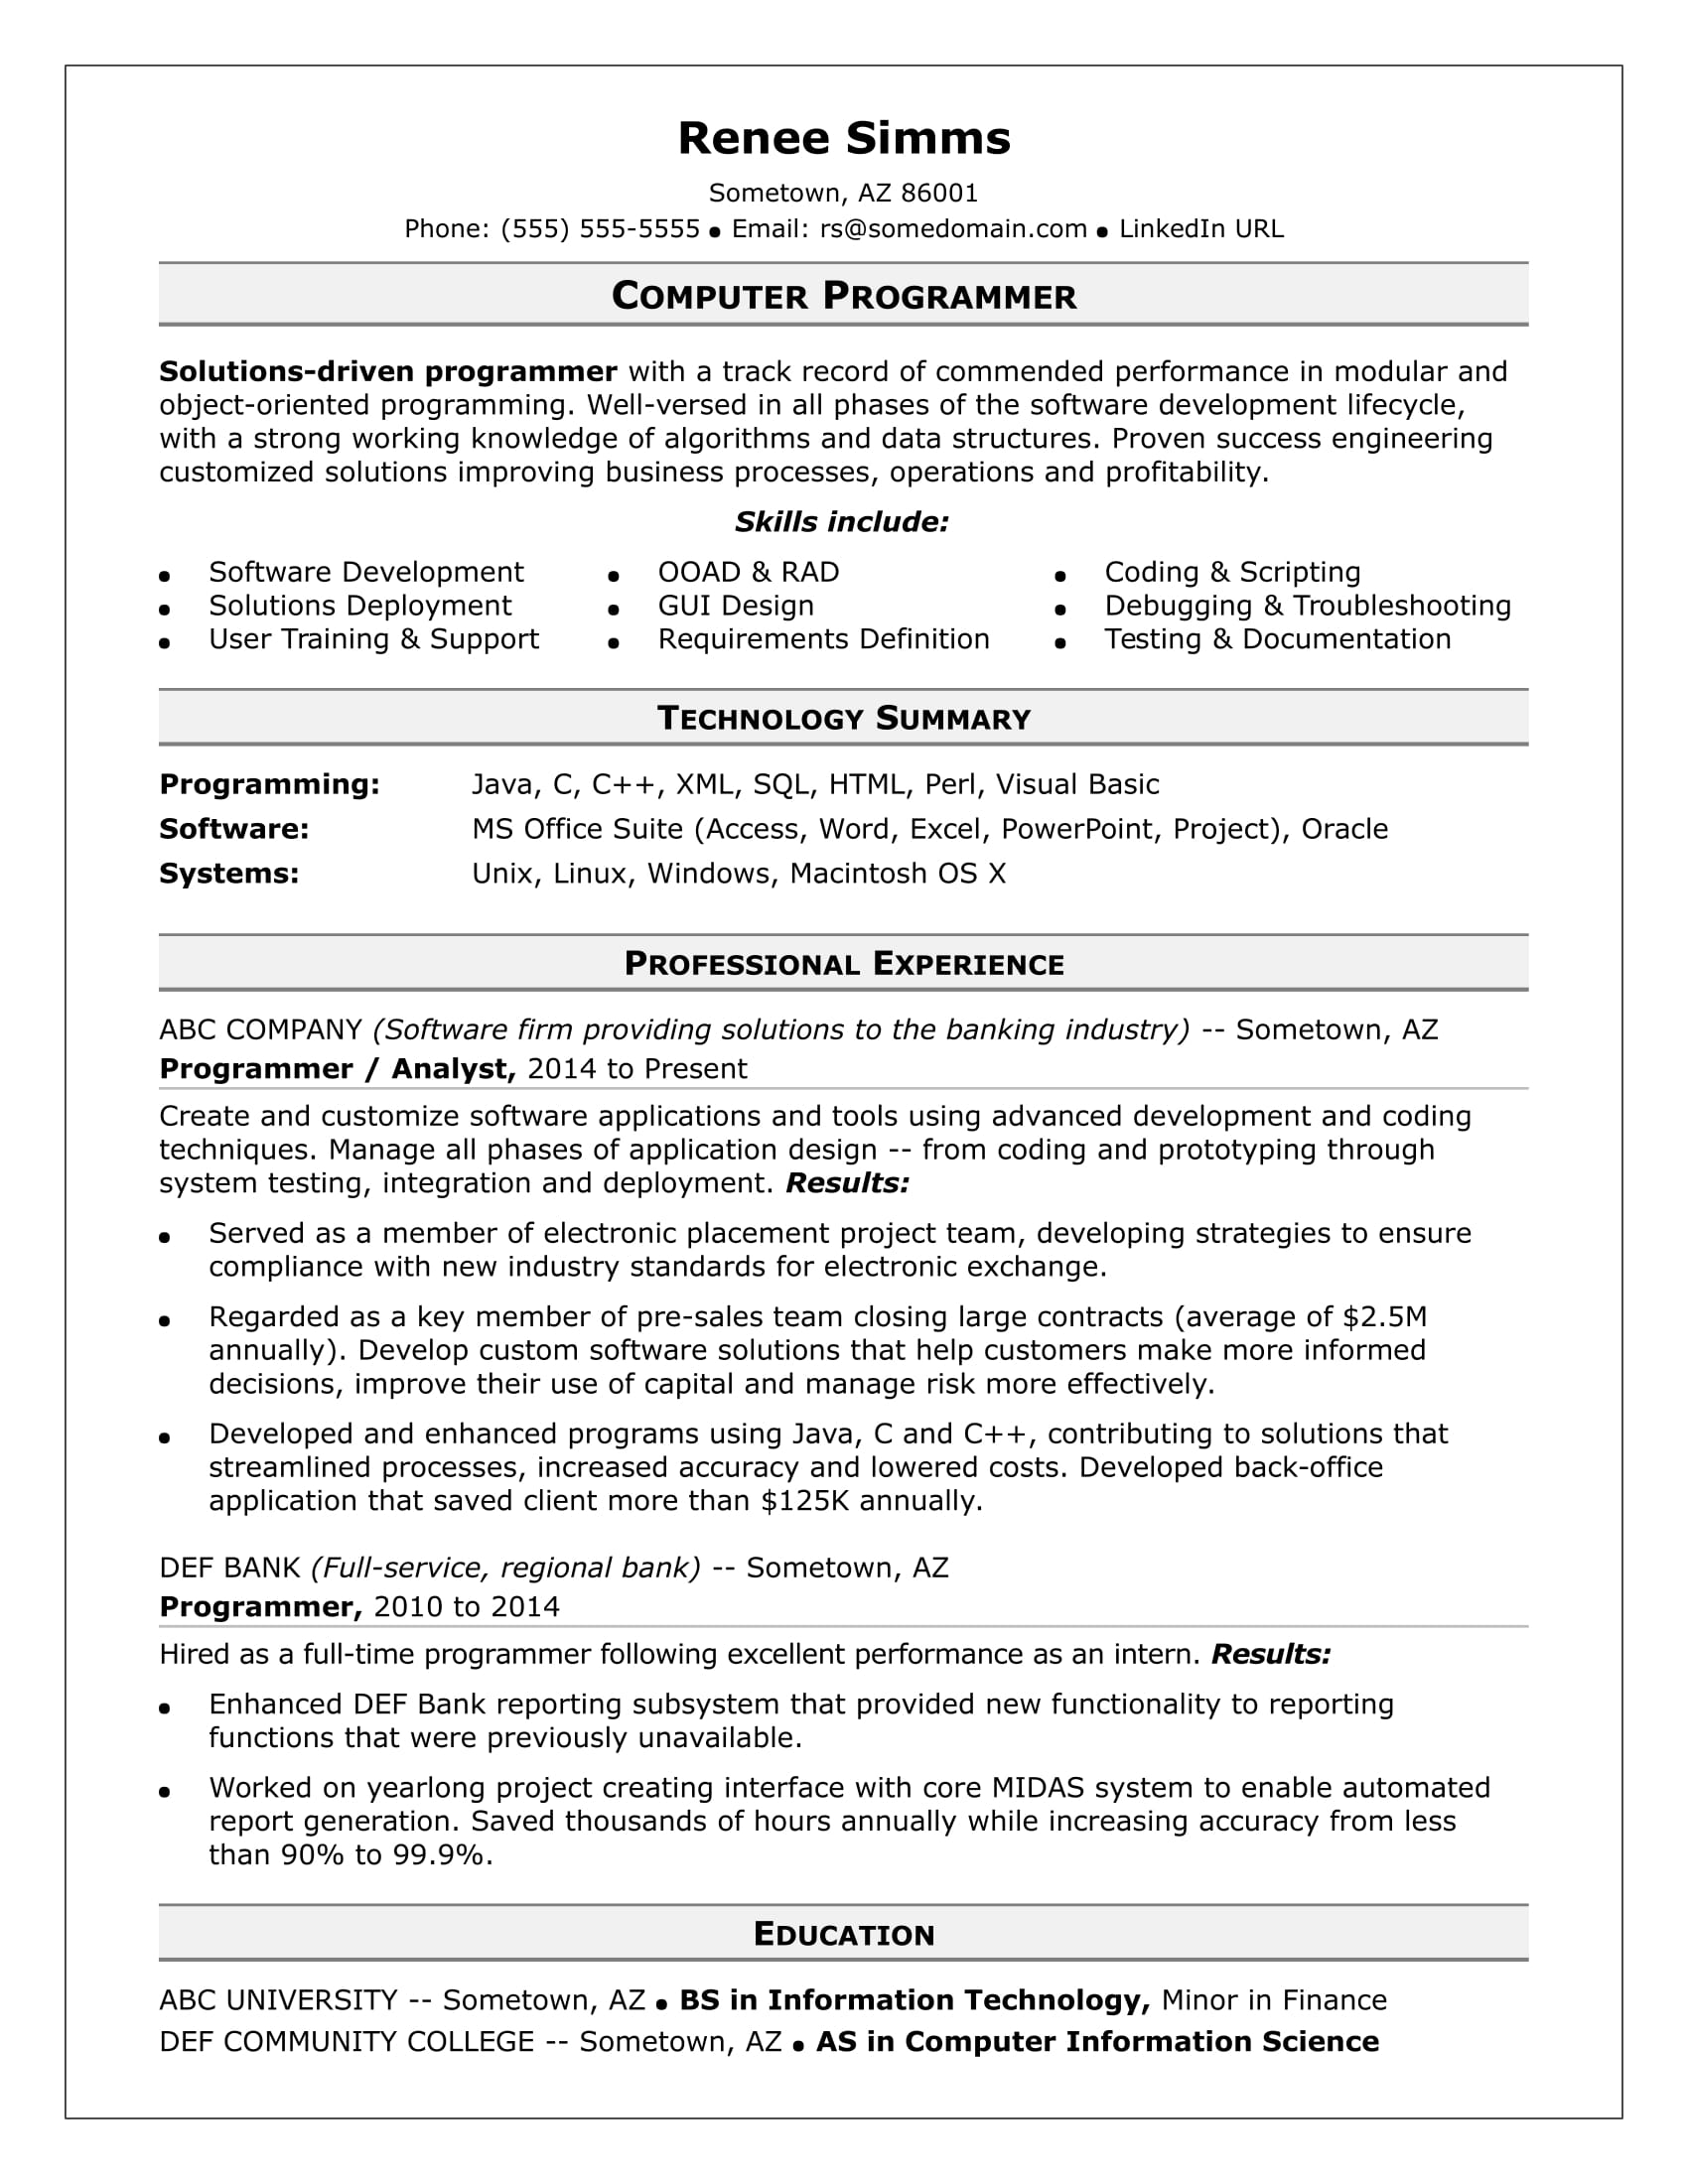 Sample Resume For A Midlevel Computer Programmer Monster